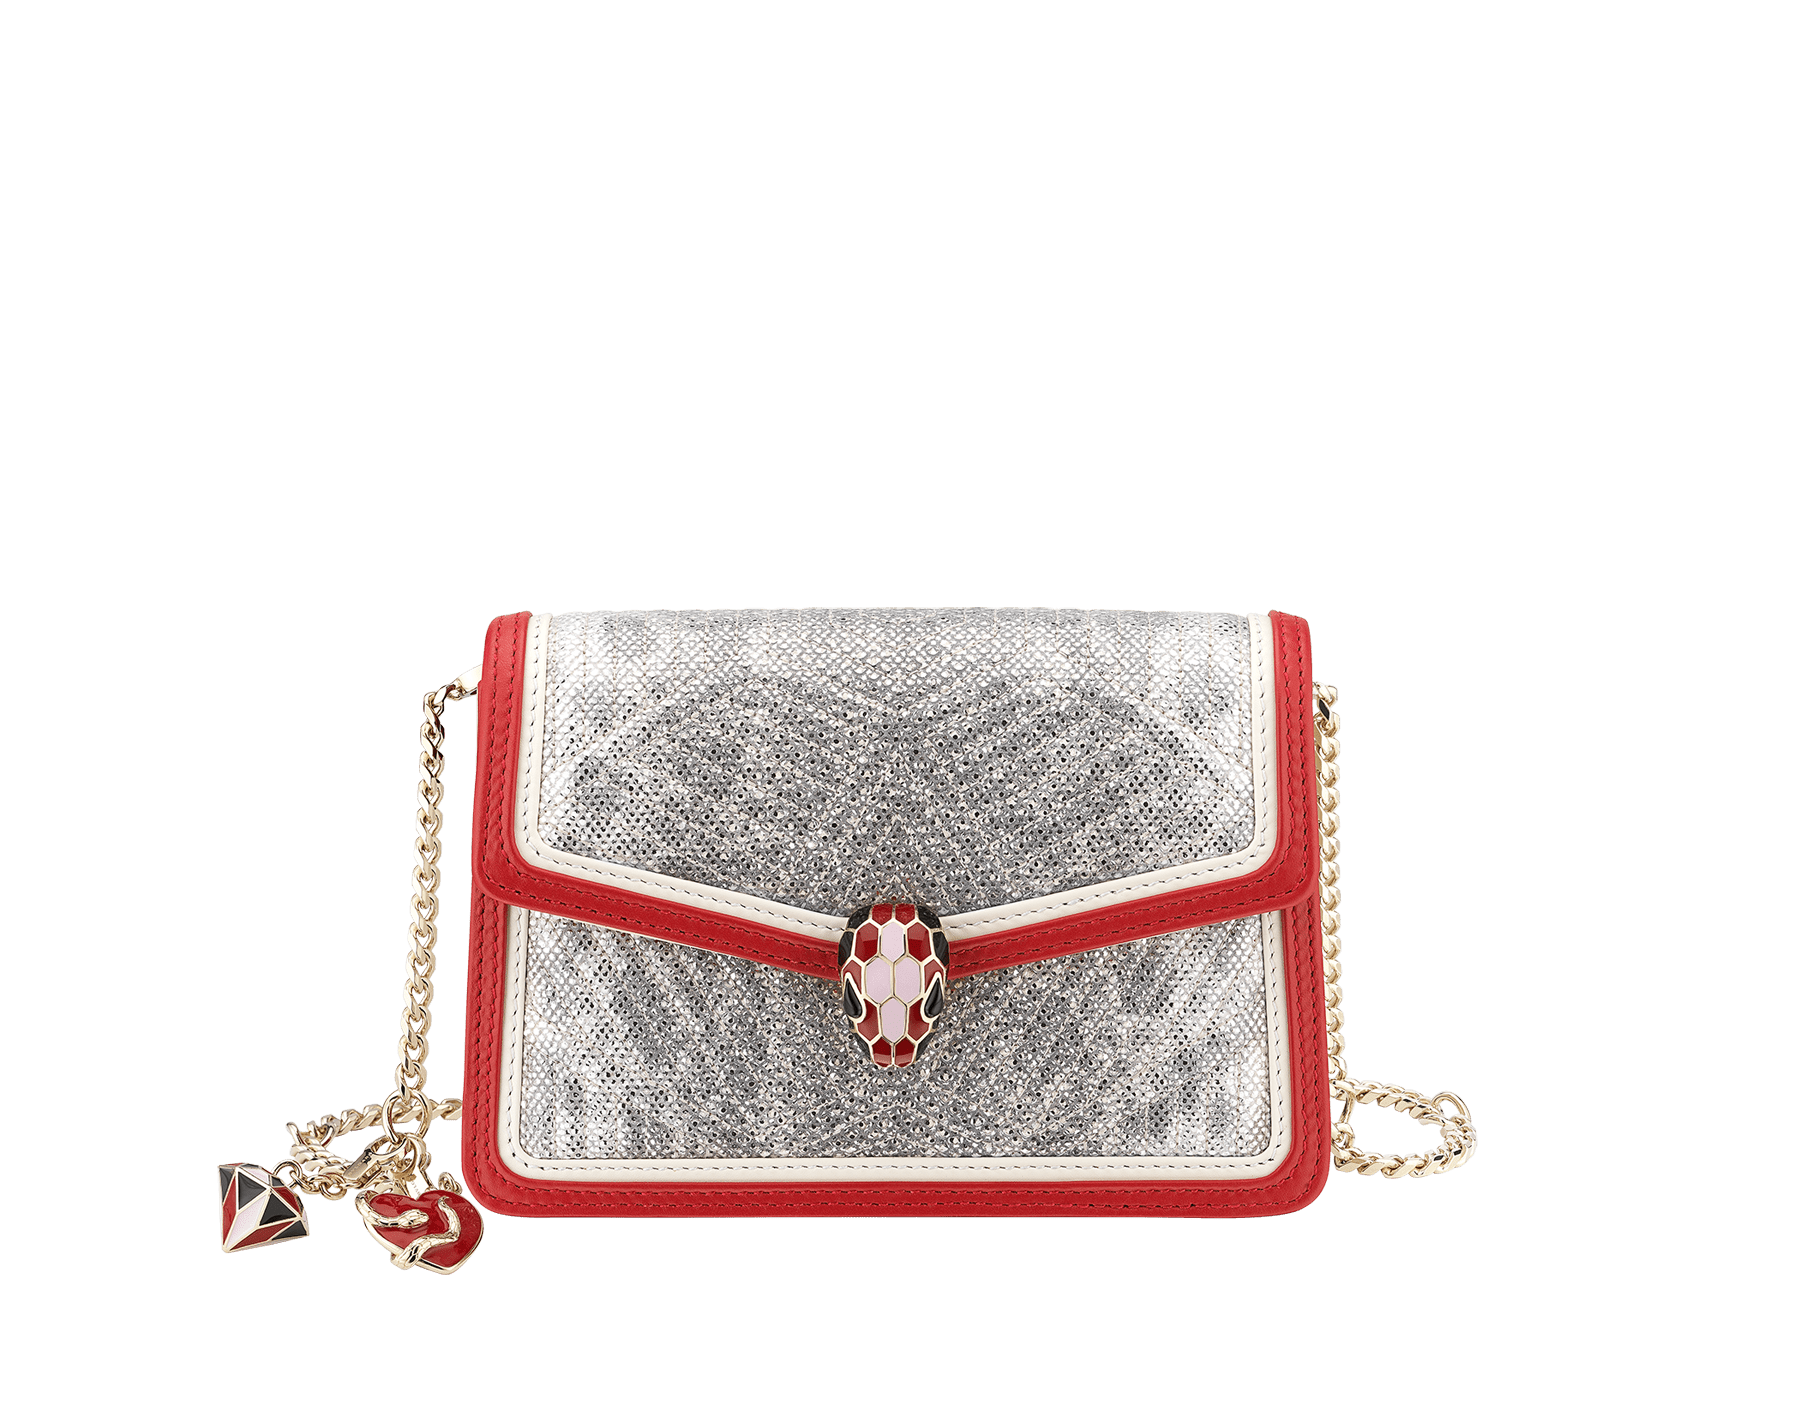 Serpenti Diamond Blast crossbody micro bag in white agate quilted metallic karung skin body and carmine jasper and white agate calf leather frames. Snakehead closure in light gold plated brass with black, carmine jasper and rosa di Francia enamel, black onyx eyes, heart-shaped and three-dimensional diamond-shaped detachable charms. 289550 image 1